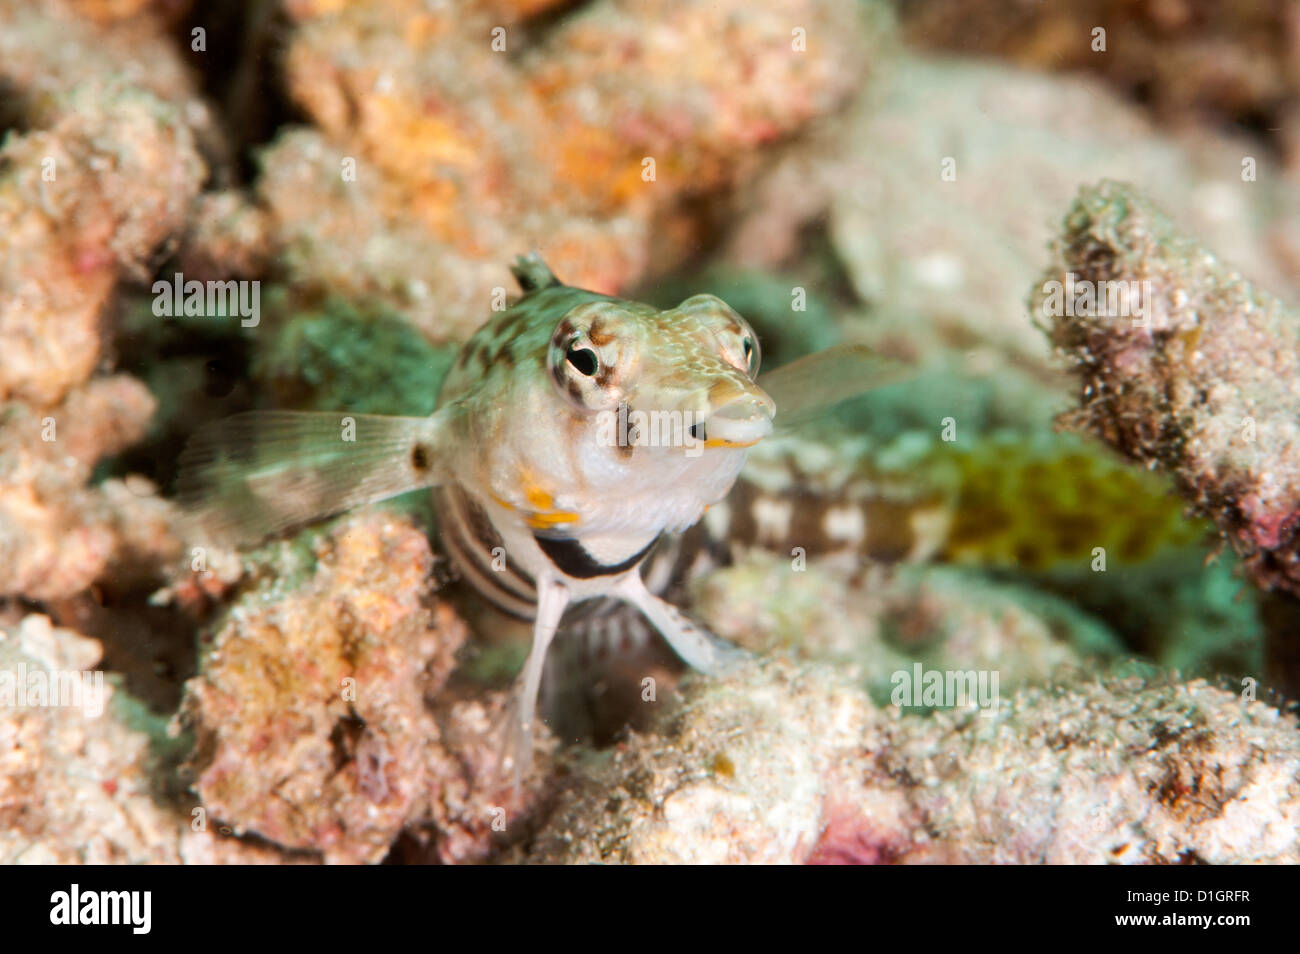 Speckled sandperch (Parapercis hexophthalma), Sulawesi, Indonesia, Southeast Asia, Asia - Stock Image